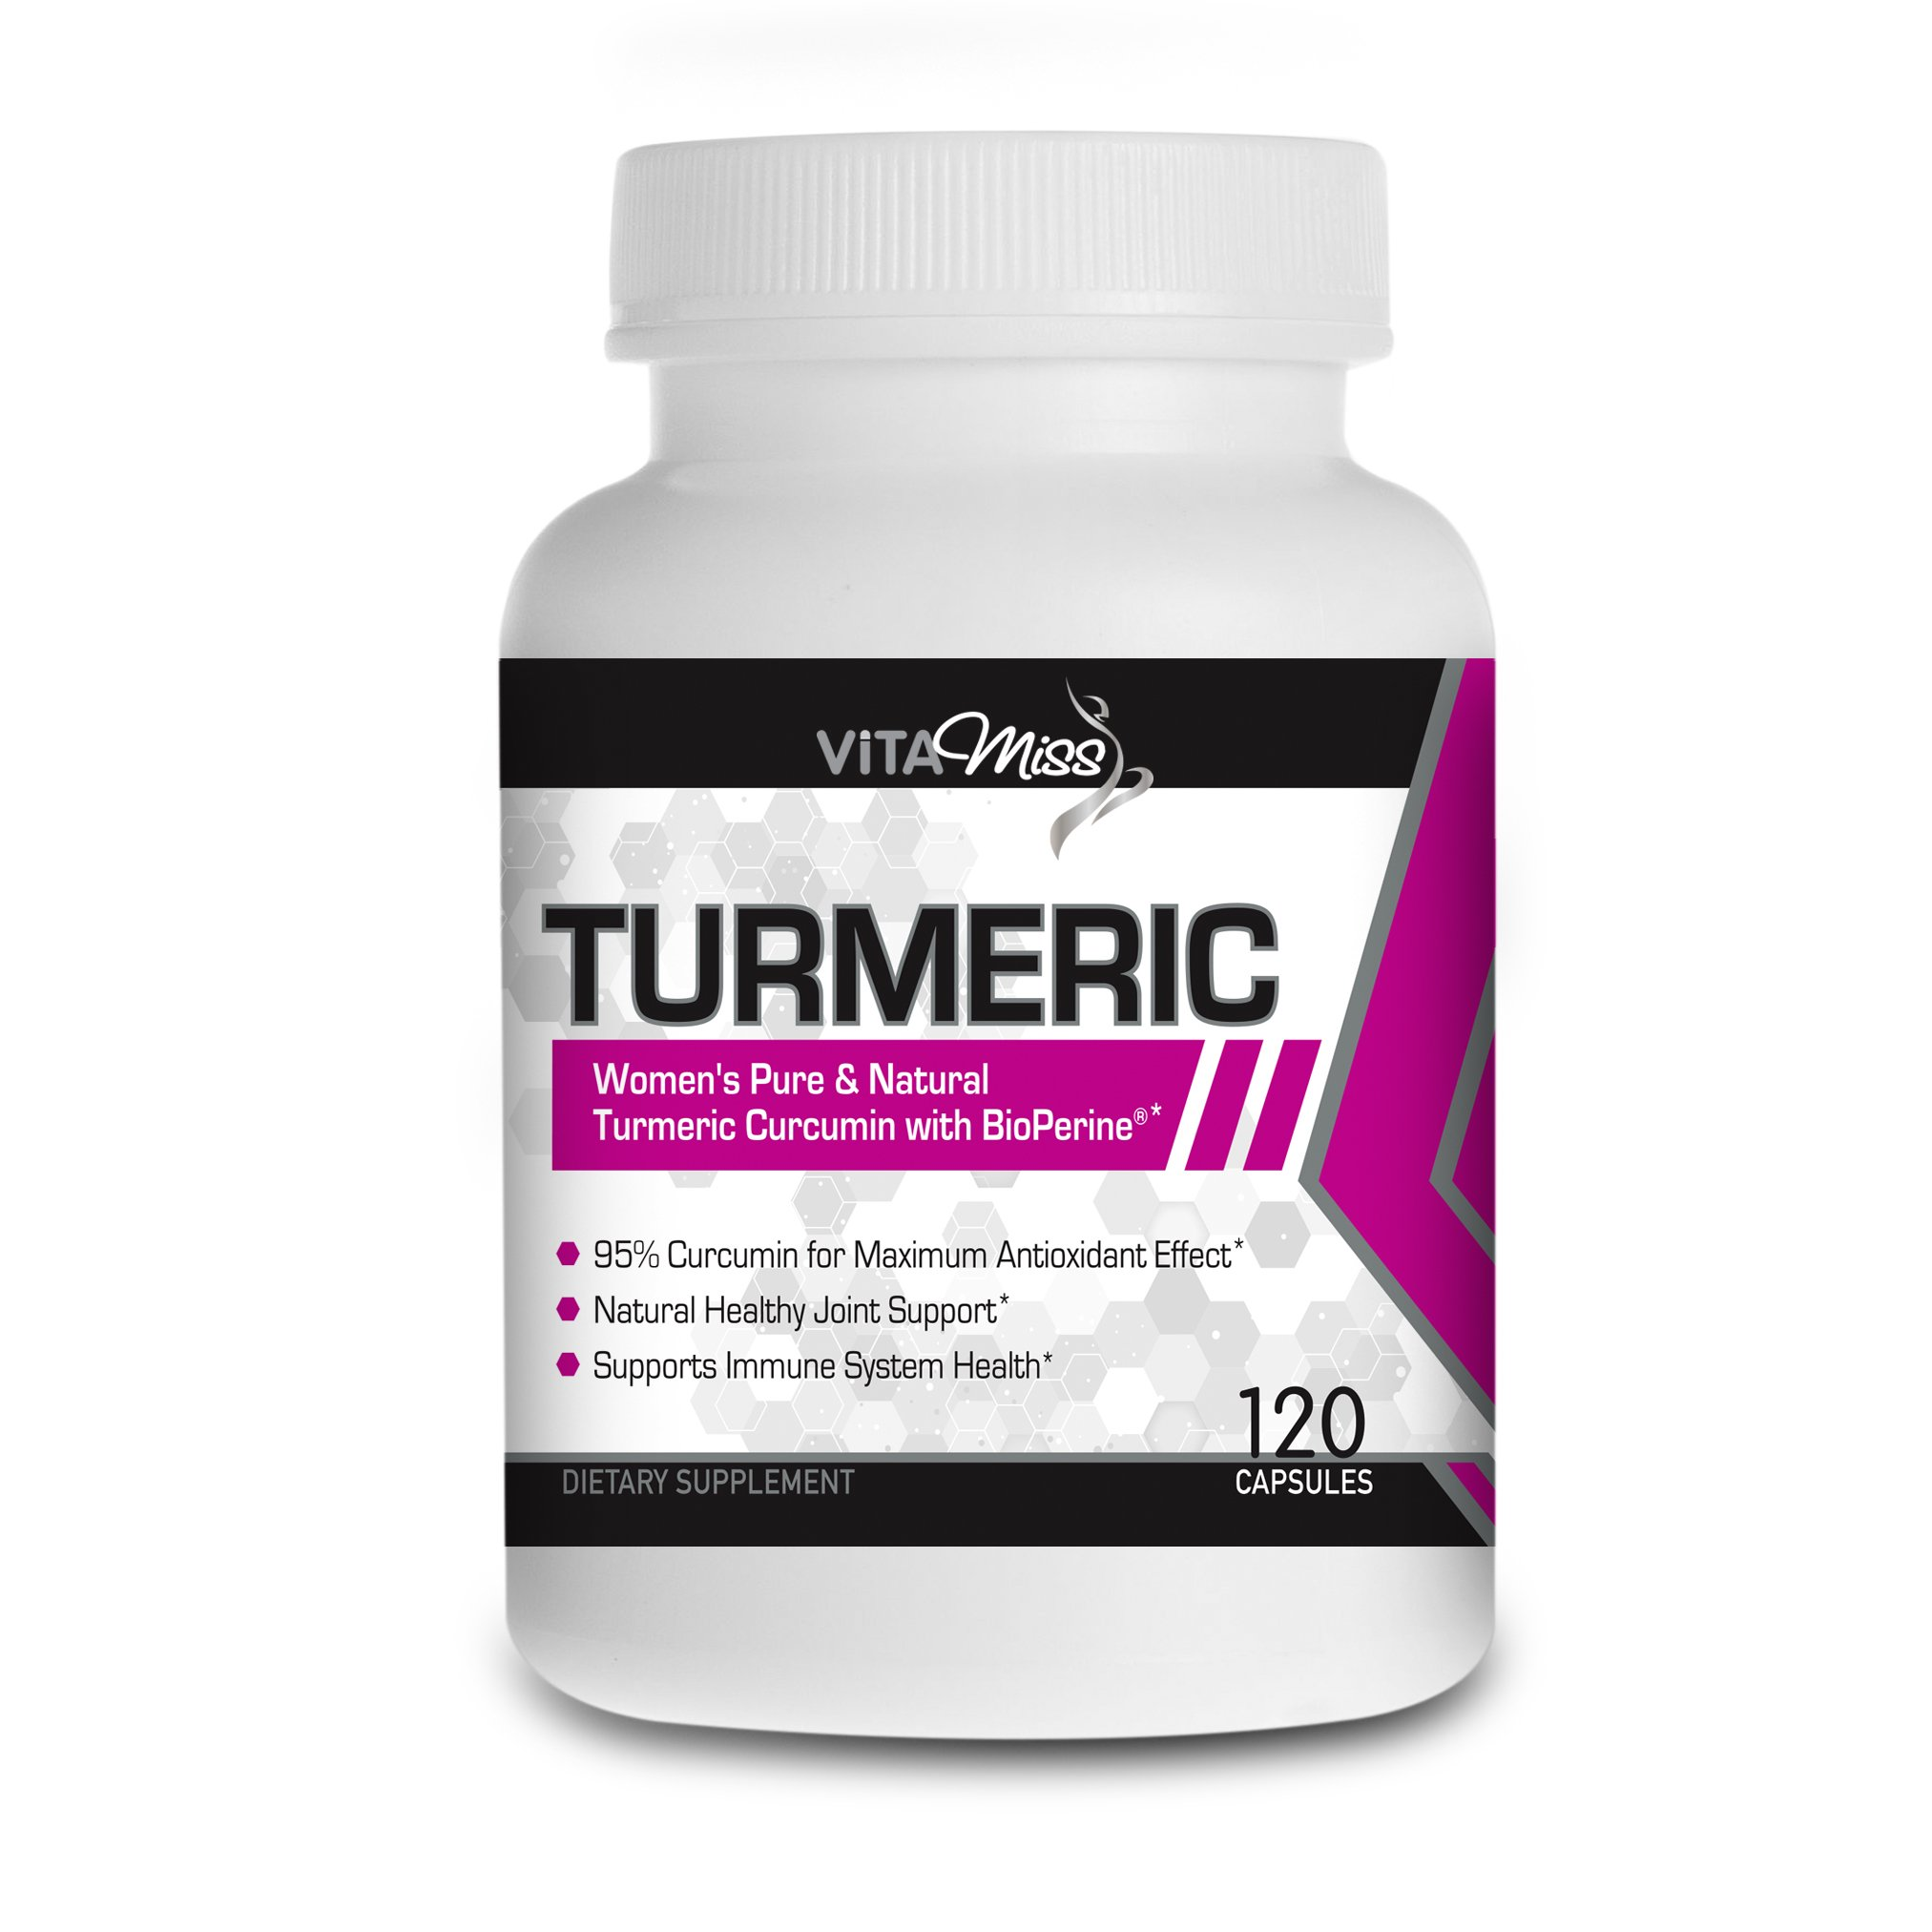 Vitamiss Turmeric – Turmeric Curcumin 95% 1,000mg servings, Support Joints, Vision & Liver with Powerful Anti-inflammatory and Anti-Aging Benefits